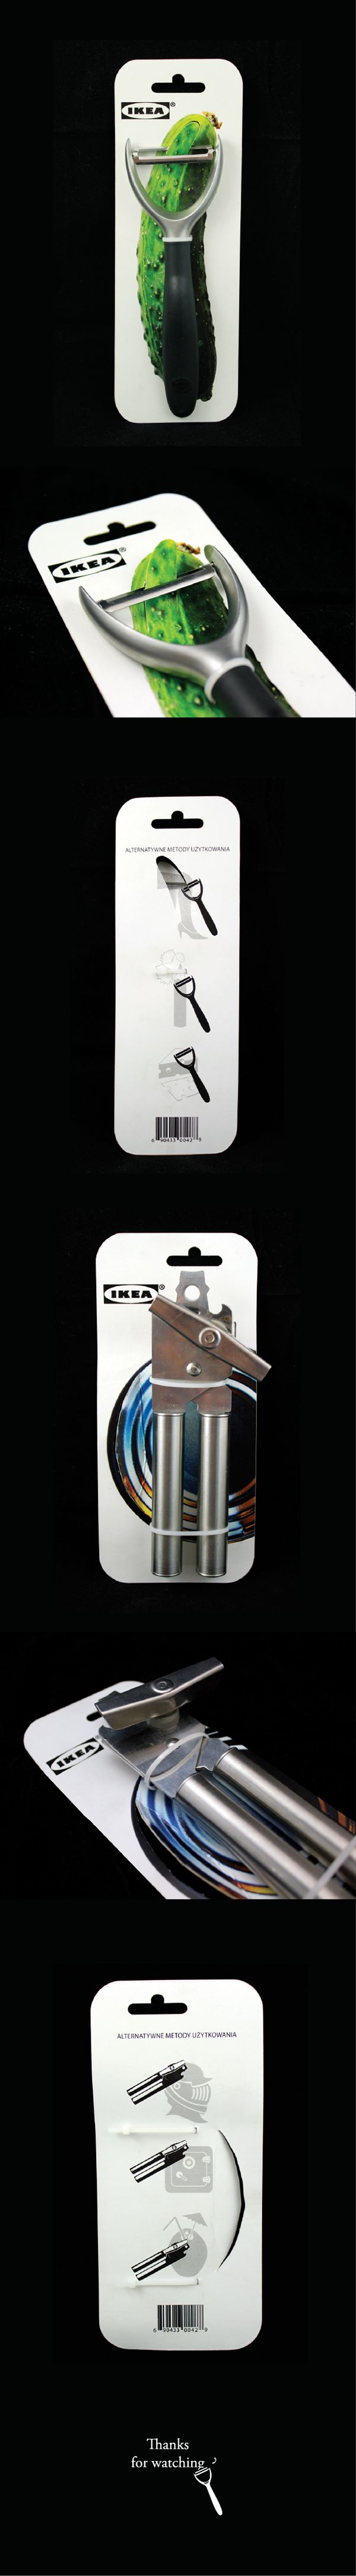 IKEA kitchen tool packages CONCEPT on Behance